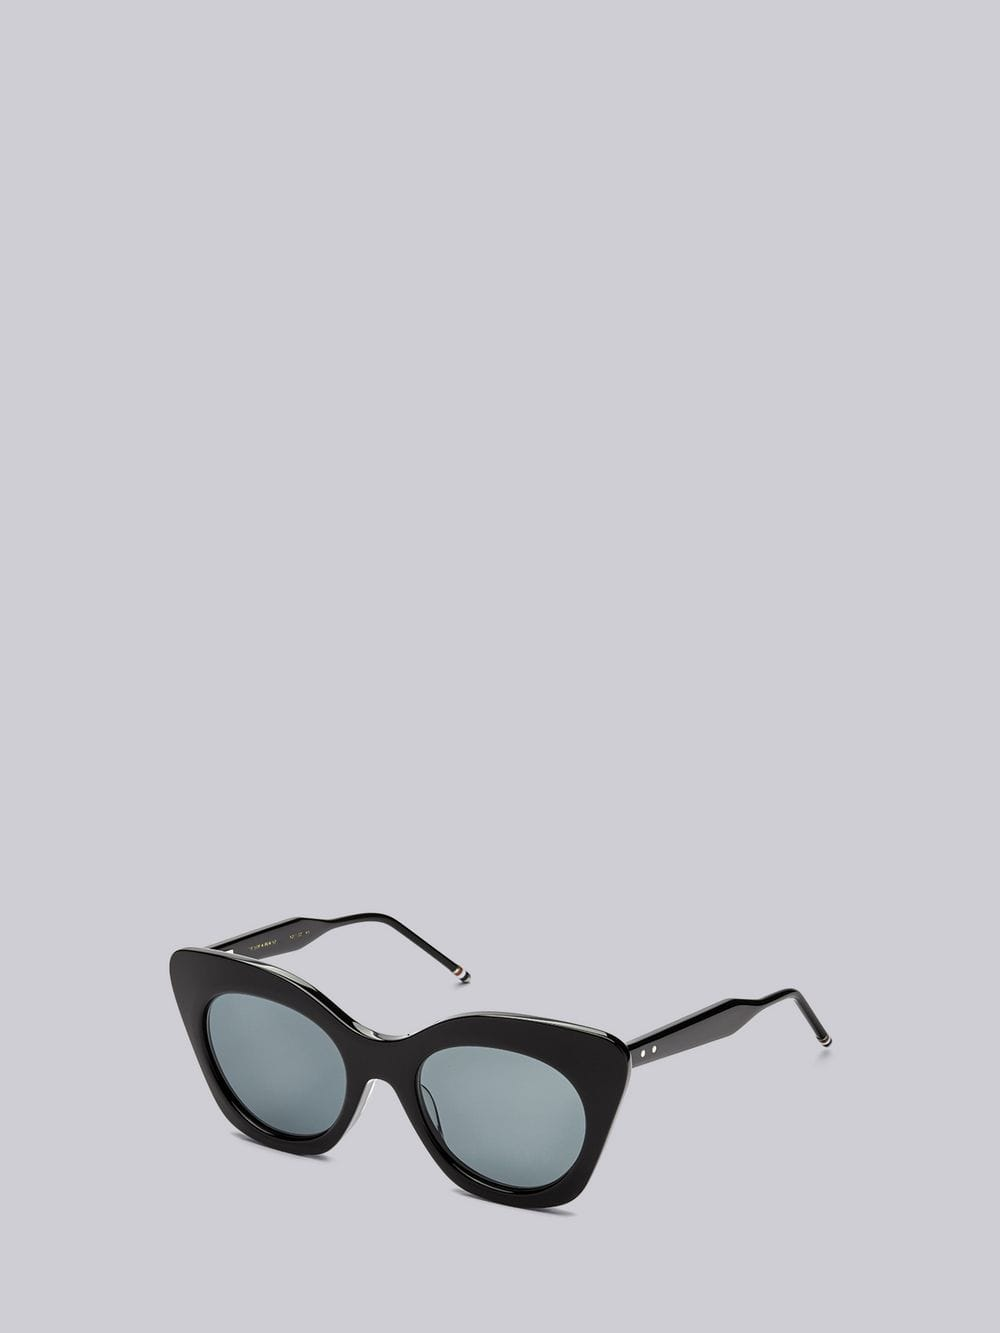 Black Sunglasses With Dark Grey Lens.jpg